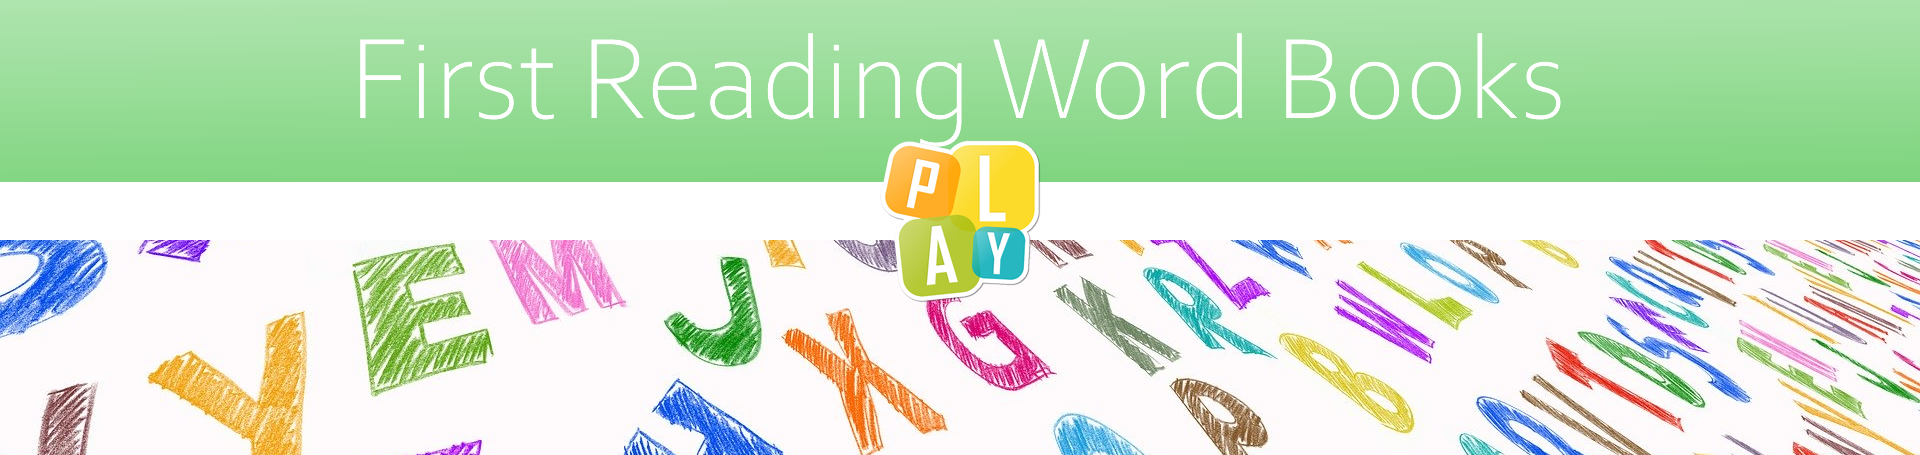 Header Image First Reading Word Books